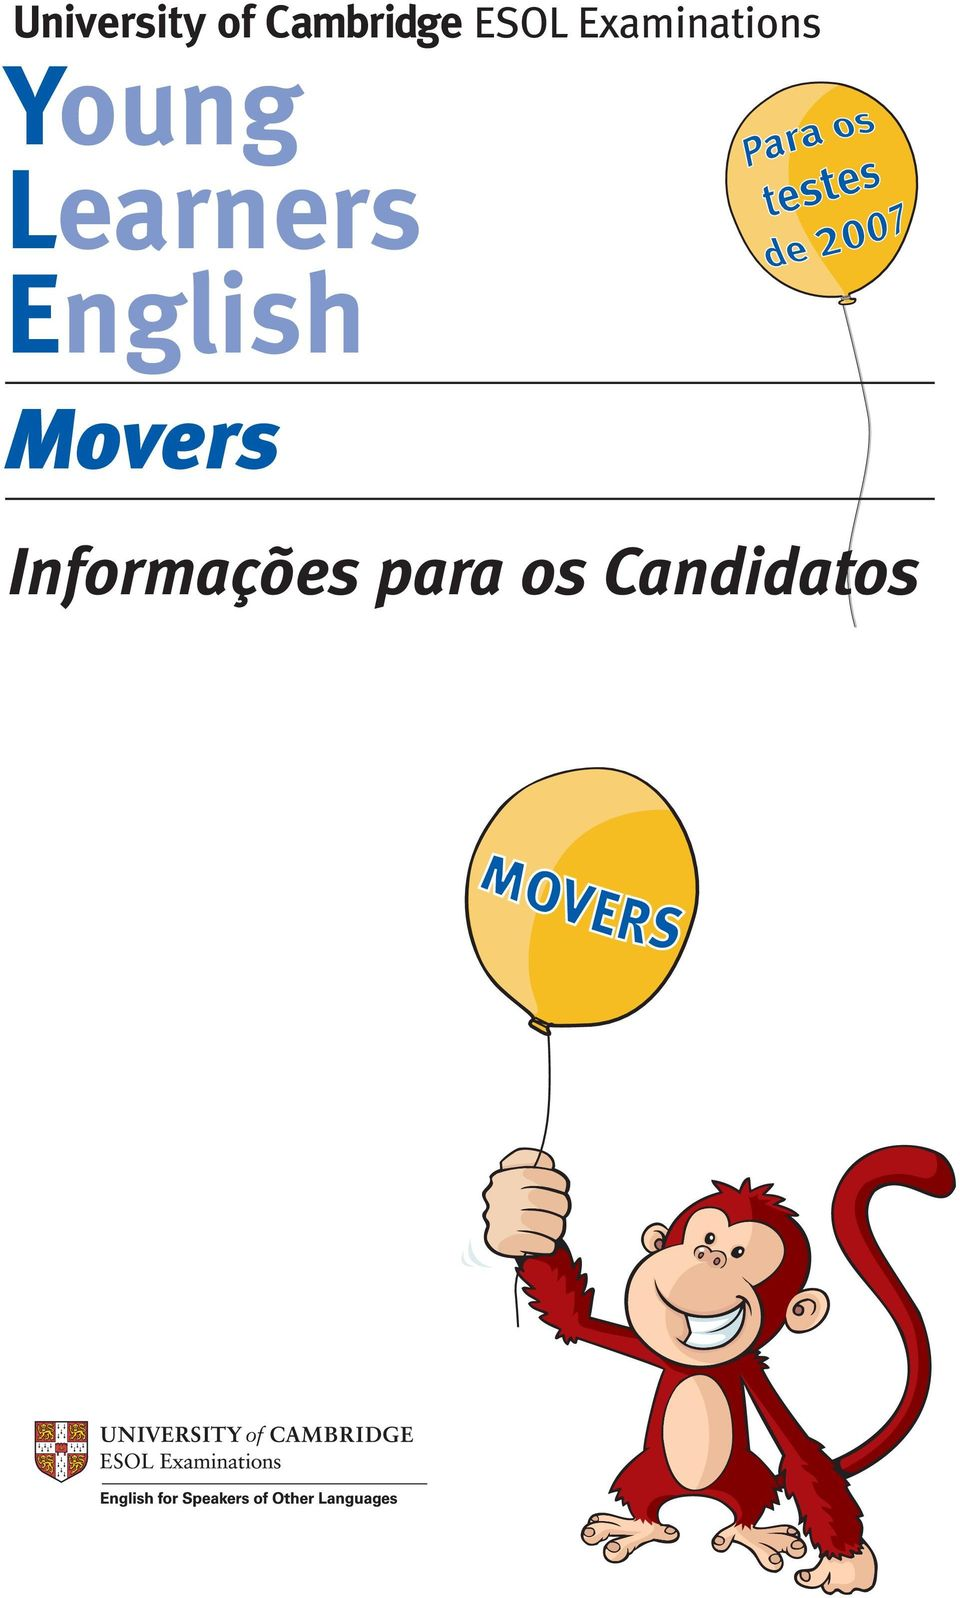 Learners English Movers